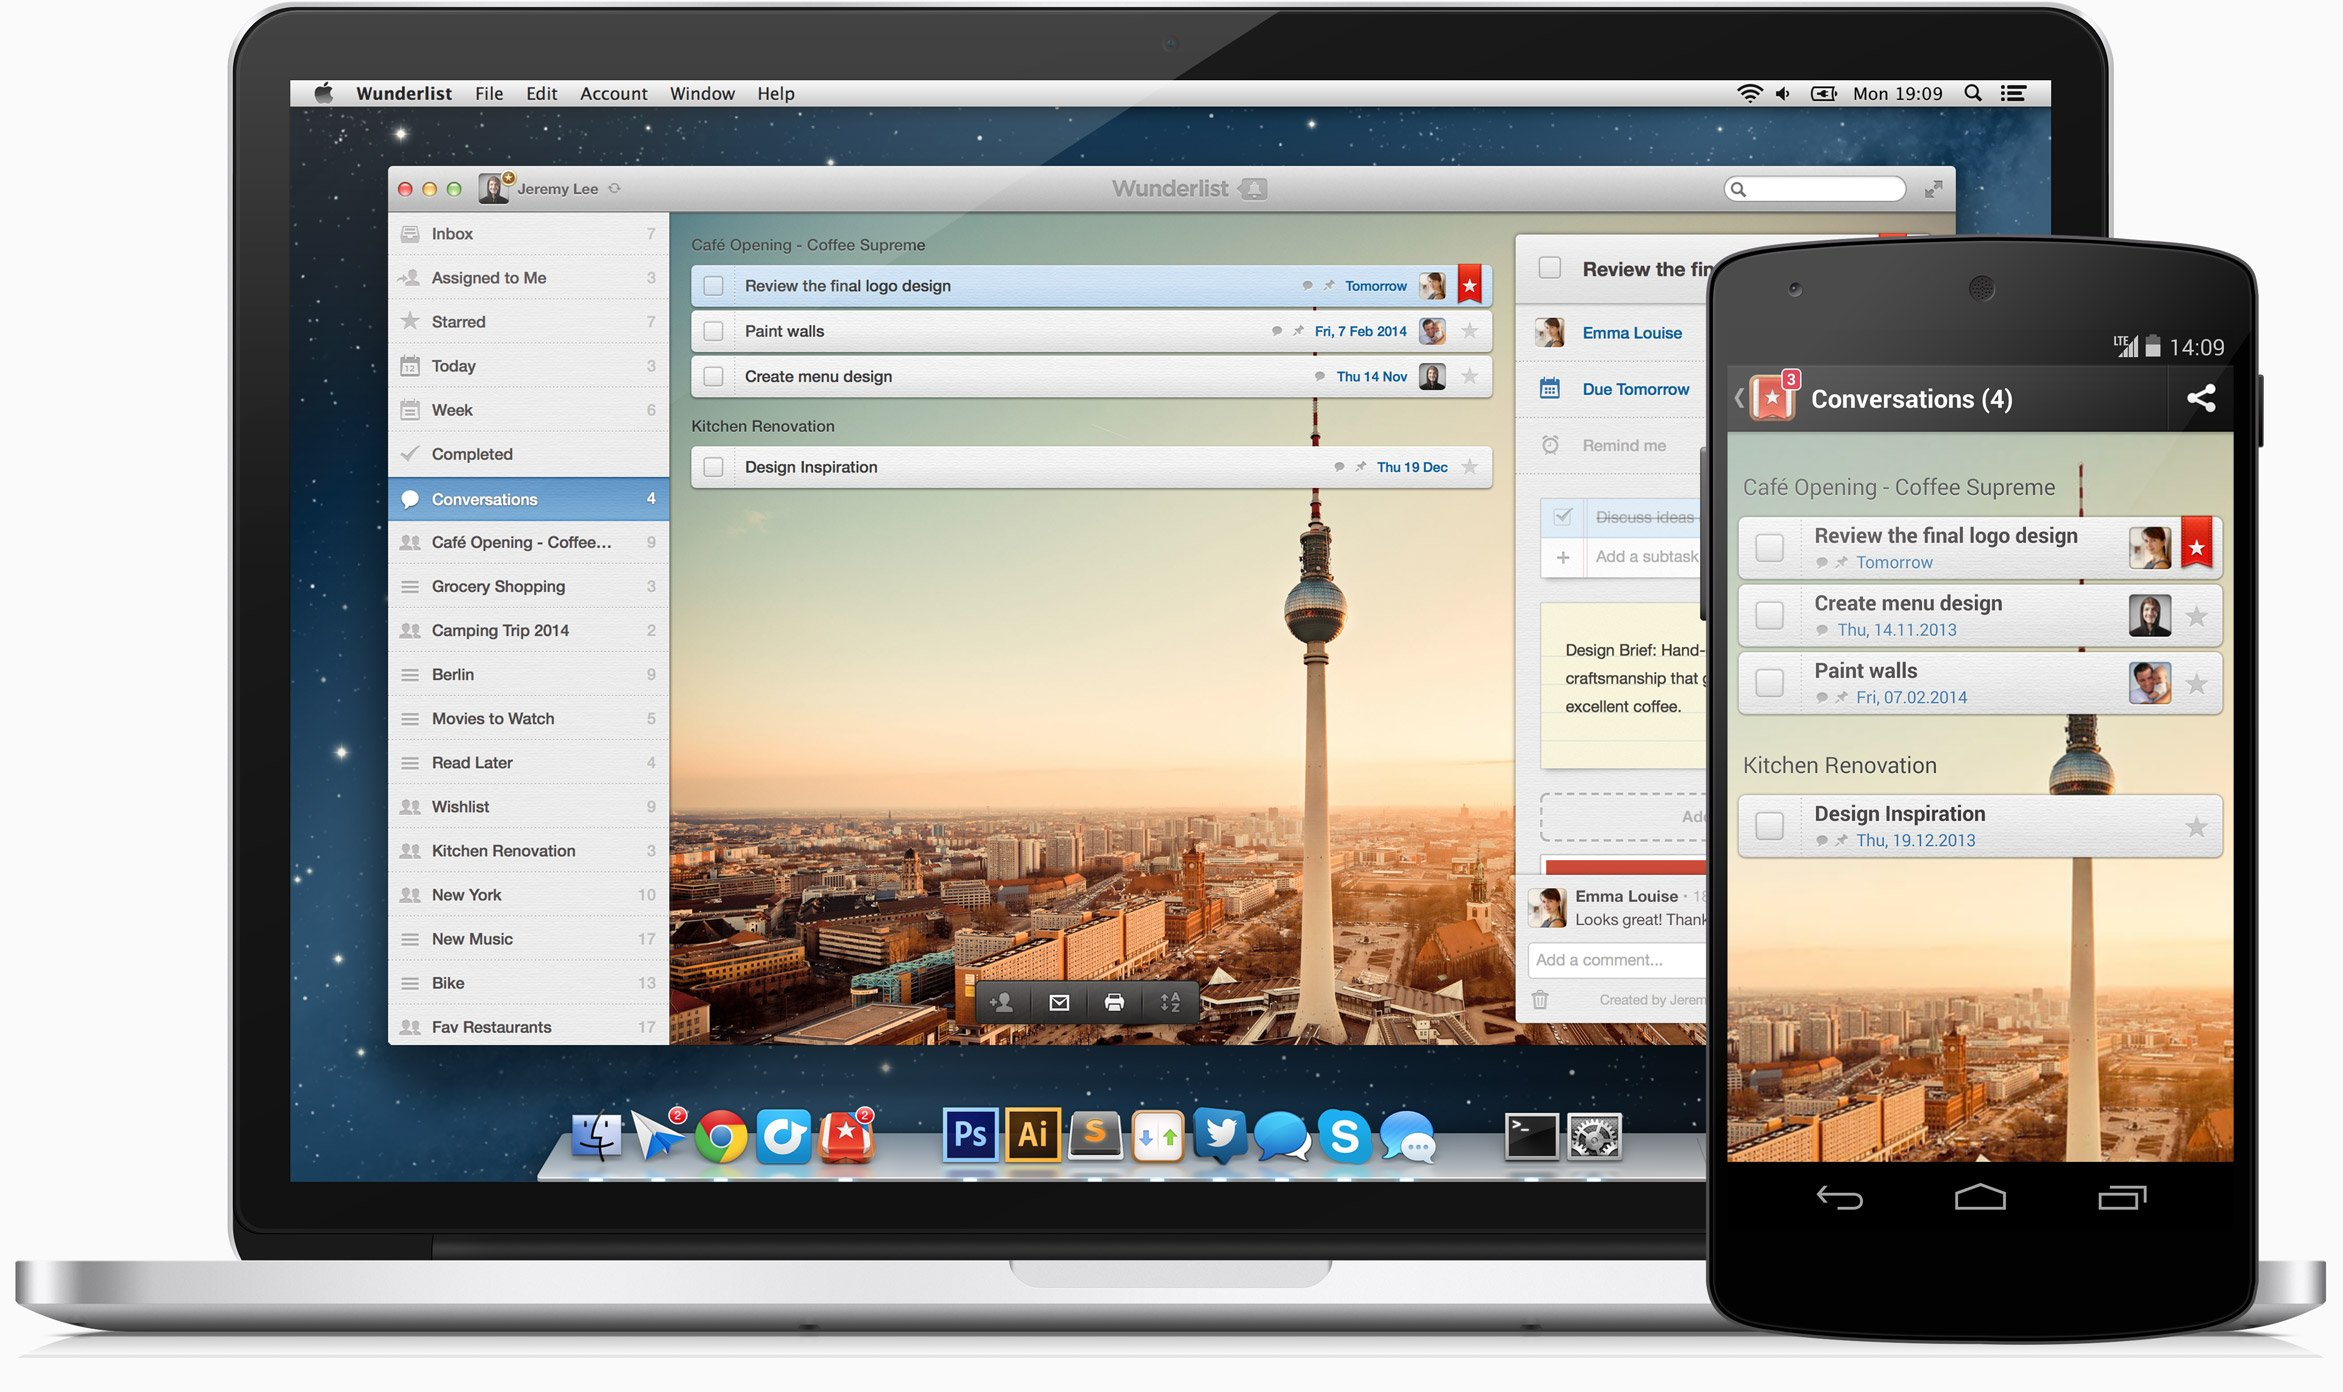 https://i0.wp.com/churchm.ag/wp-content/uploads/2014/10/macbook-wunderlist-action.jpg